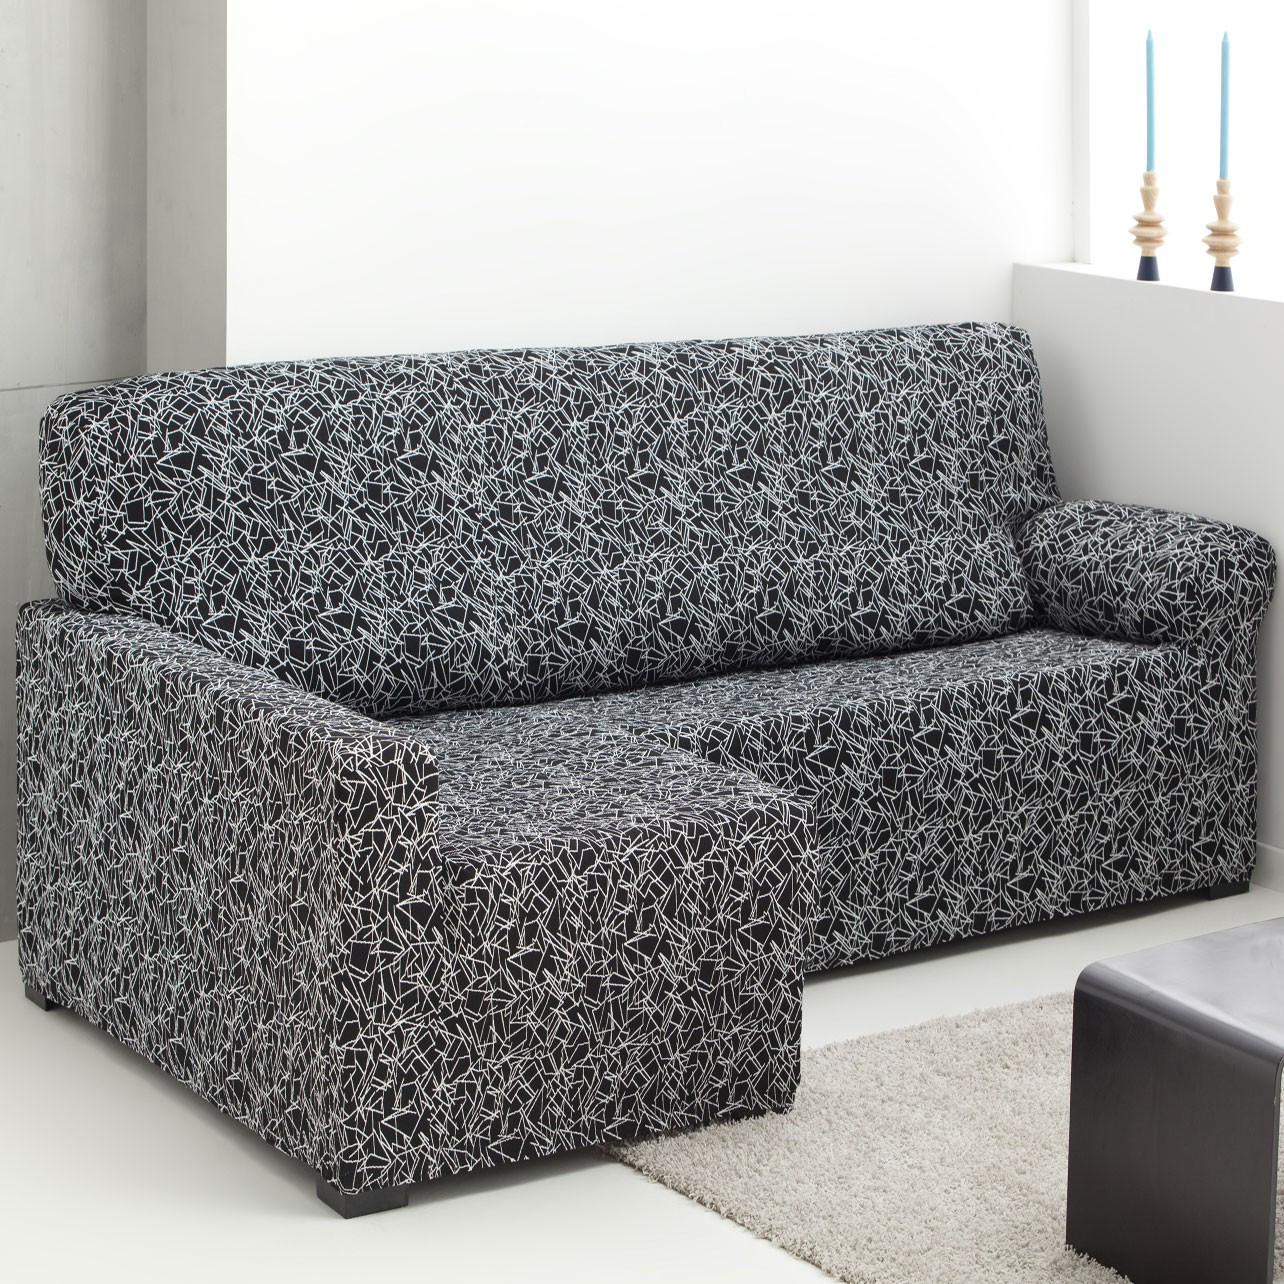 Funda sofa Chaise Longue Encantador Funda sofá Chaise Longue Brazo Largo Elástica Sirocco Of 37  Innovador Funda sofa Chaise Longue